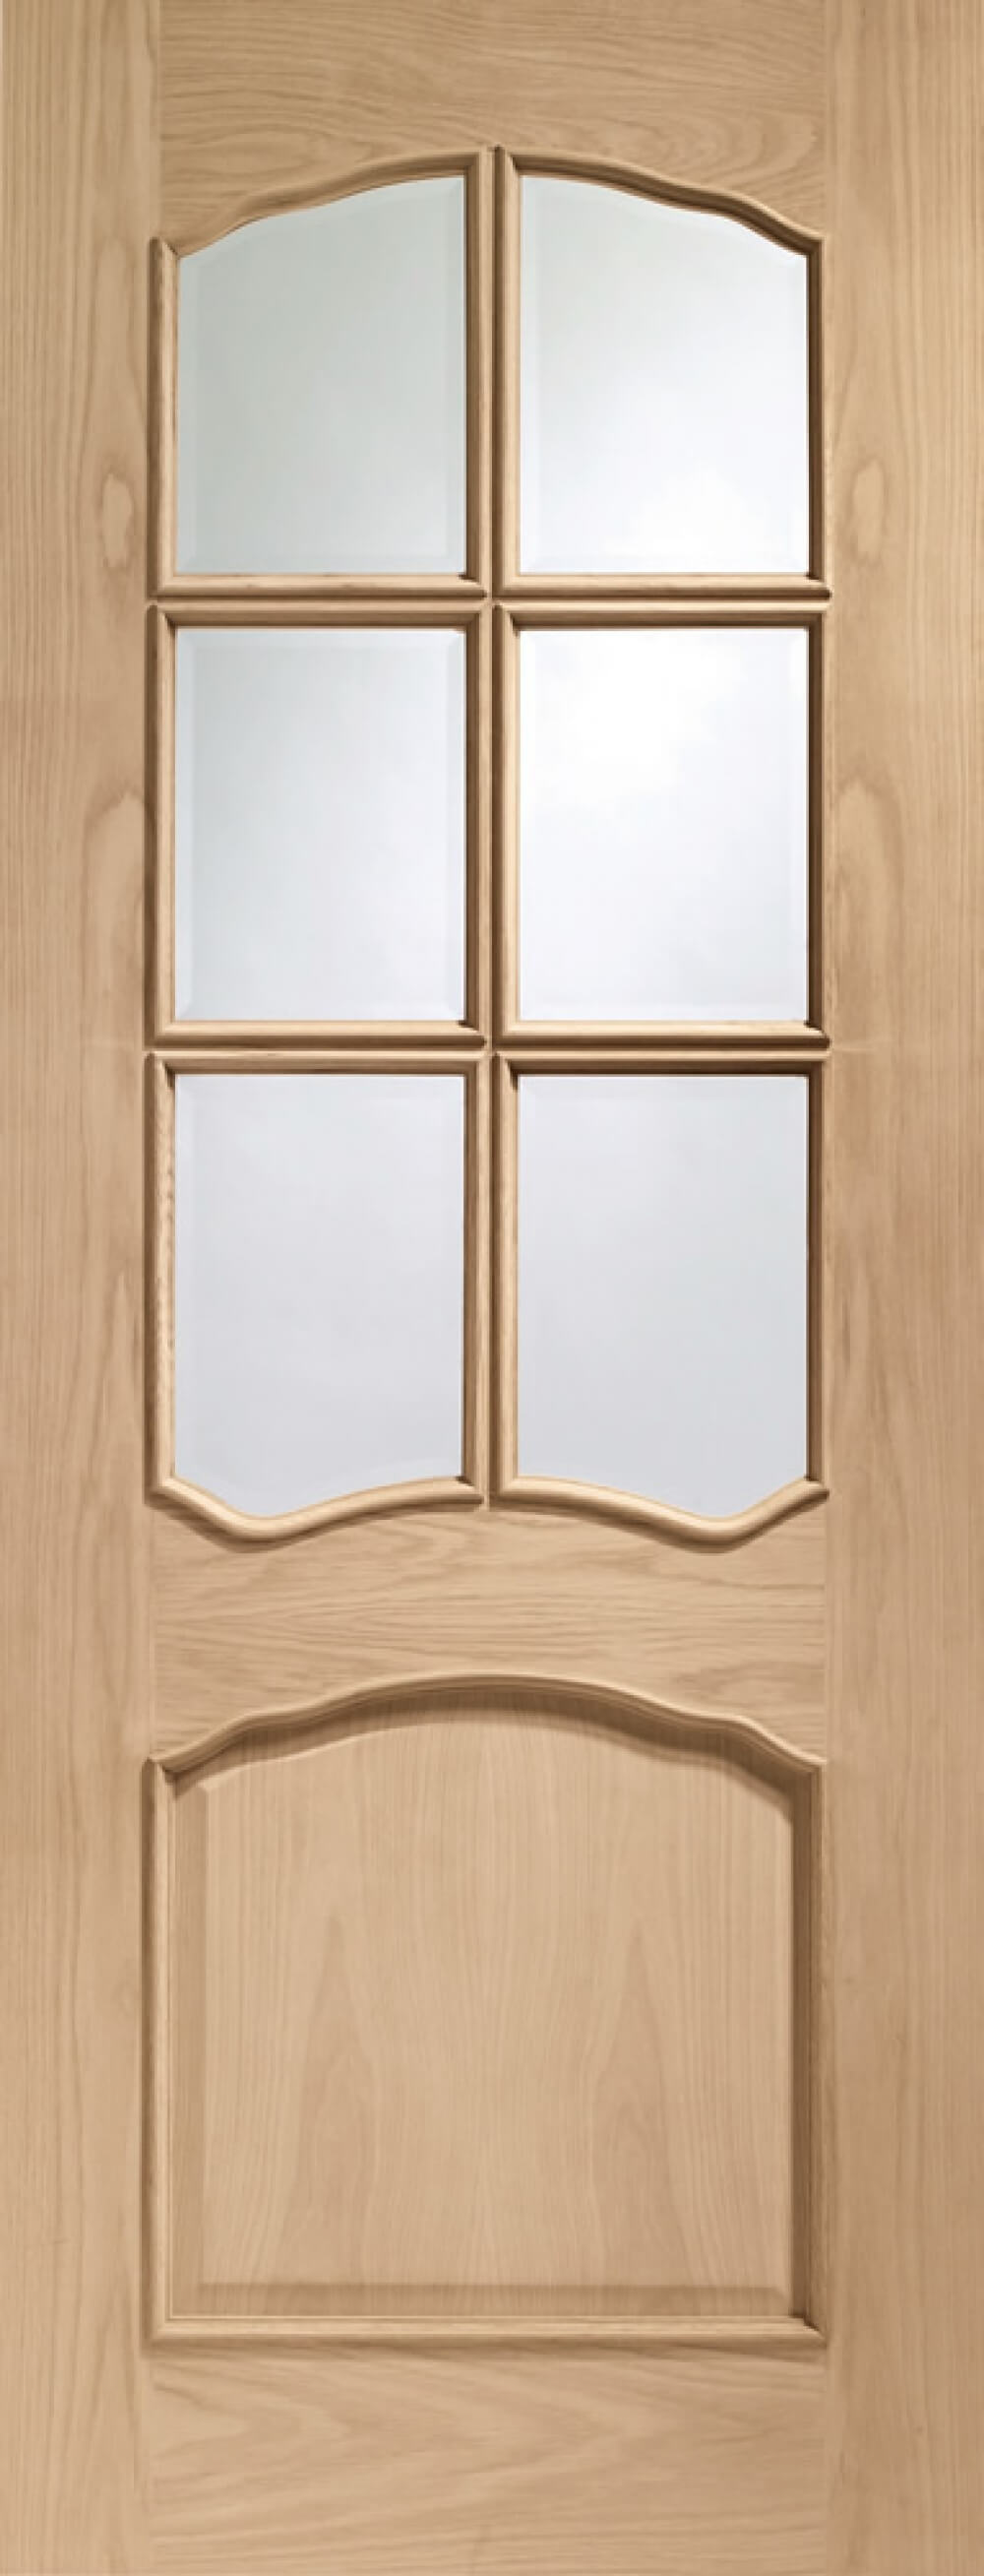 Riviera Oak Glazed Door Rm2S - Xl - PREFINISHED